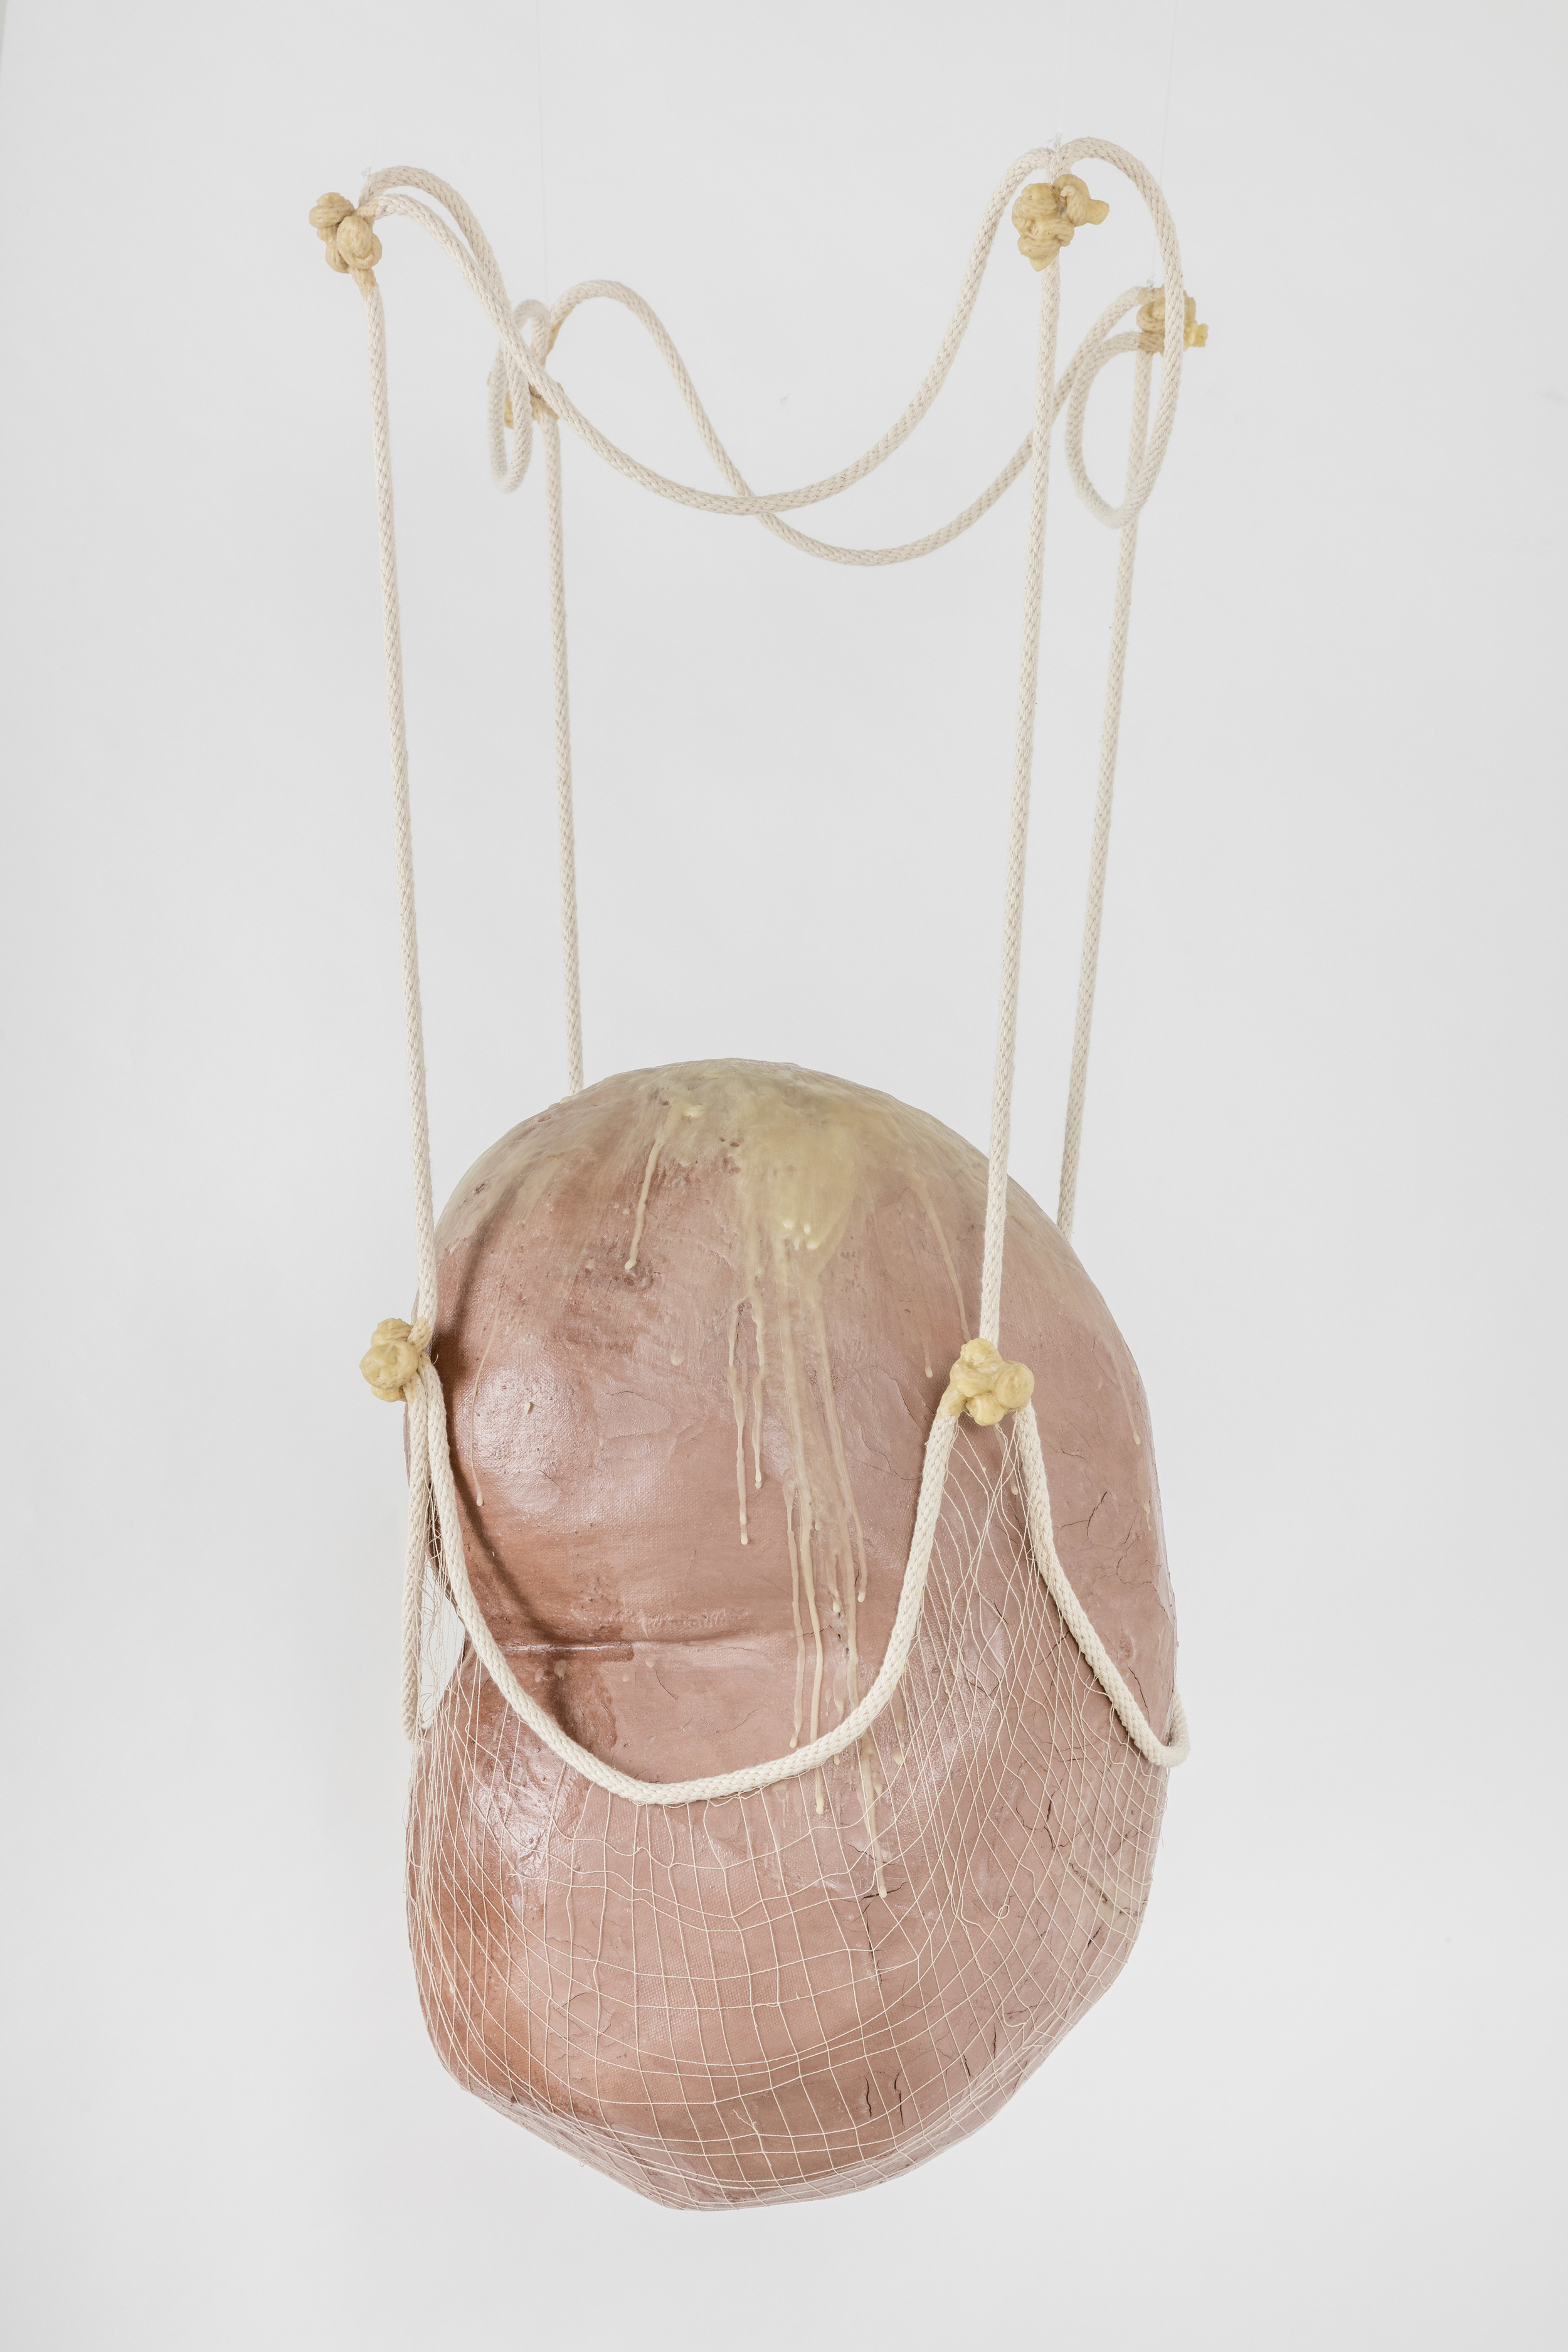 Tanya Aguiniga   Impotence Incarnate , 2016  Cotton rope, cotton thread, foam, gauze, self-drying clay and beeswax  36 x 14 x 15 inches